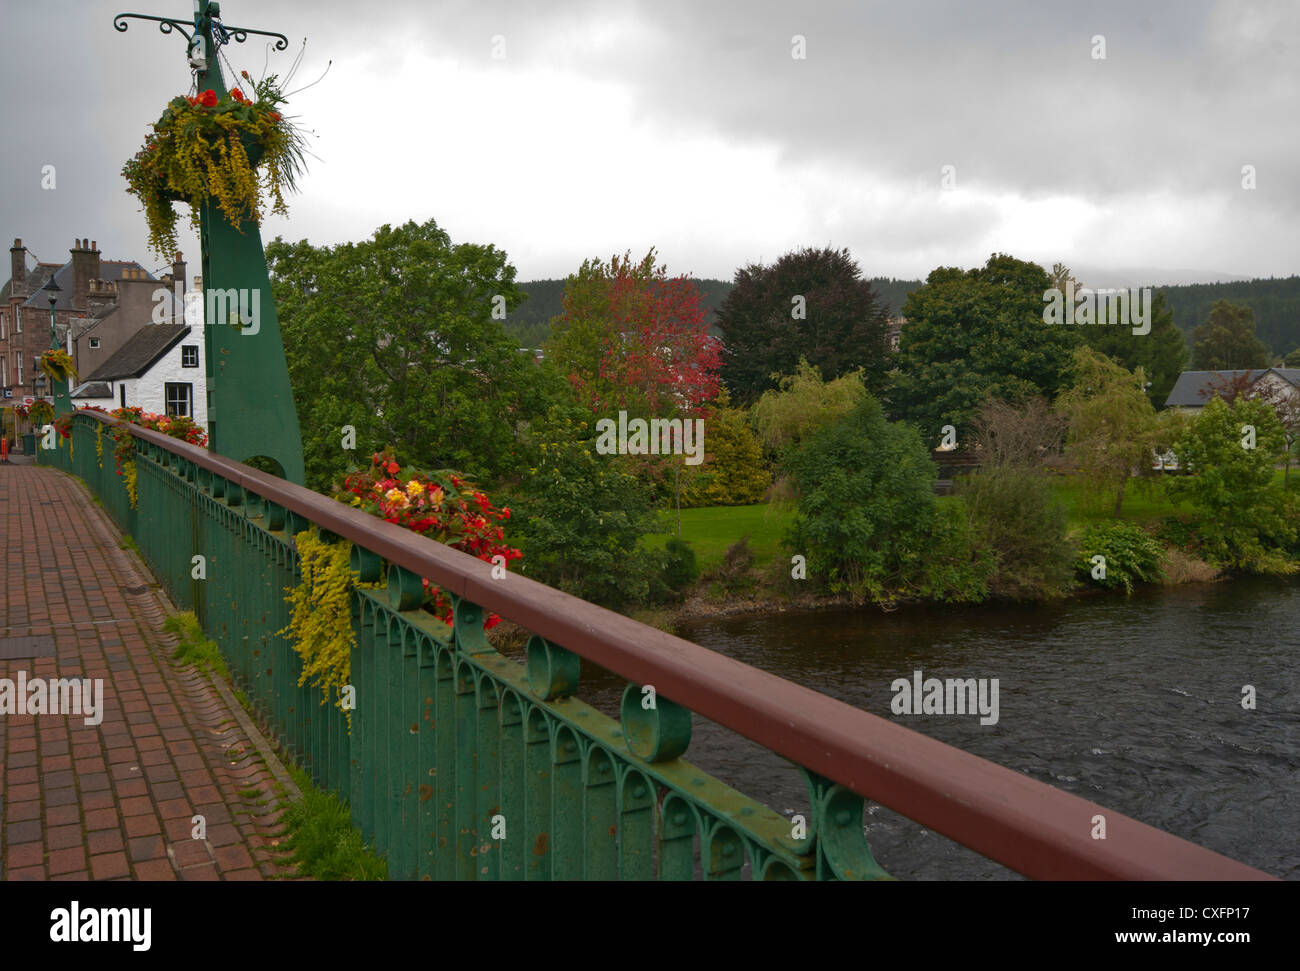 Dalginross Bridge Over The River Earn Comrie Perth and Kinross Scotland - Stock Image